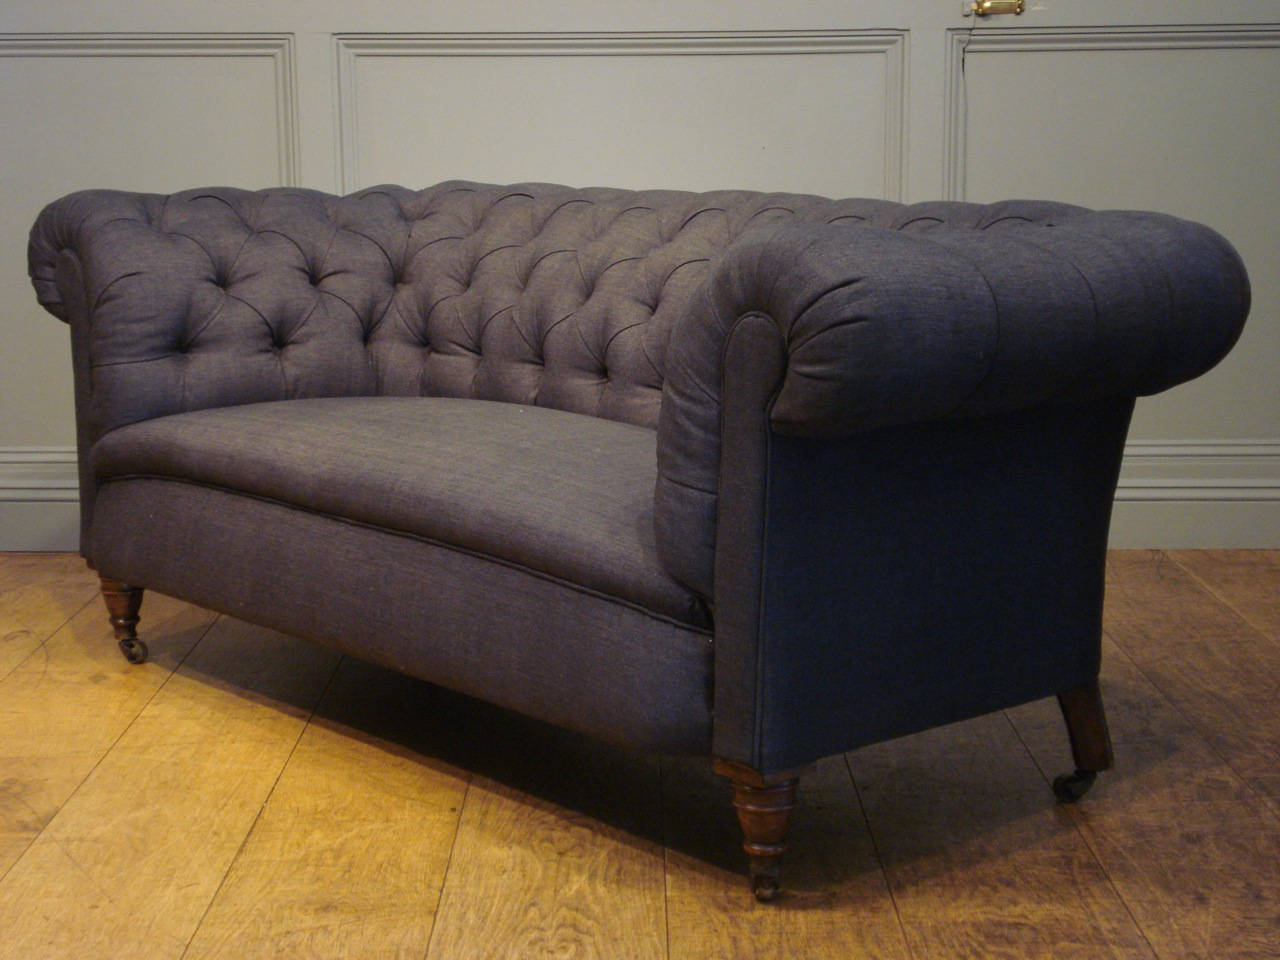 How Much To Reupholster A Sofa Uk Image Fatare Com